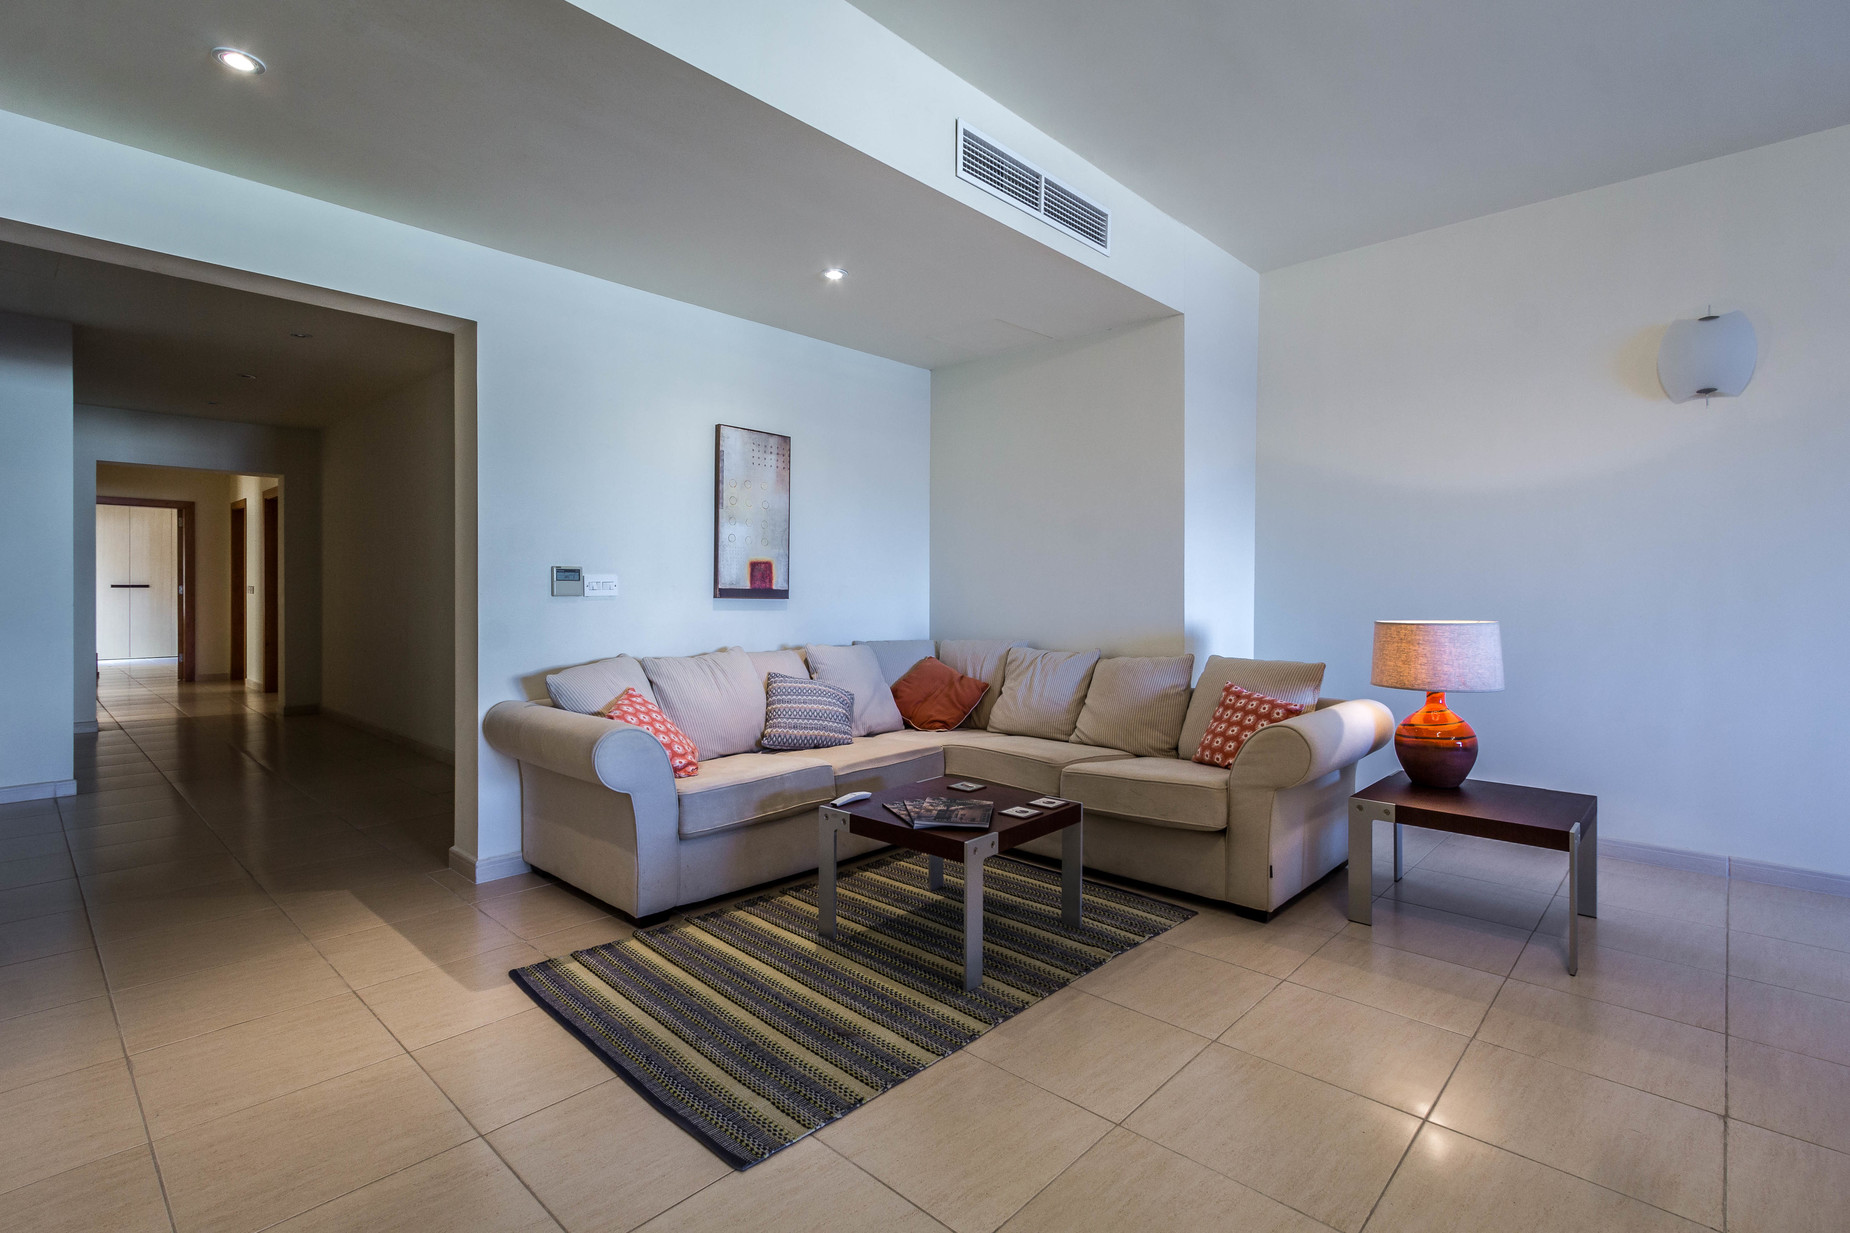 4 bed Apartment For Sale in Mellieha, Mellieha - thumb 9